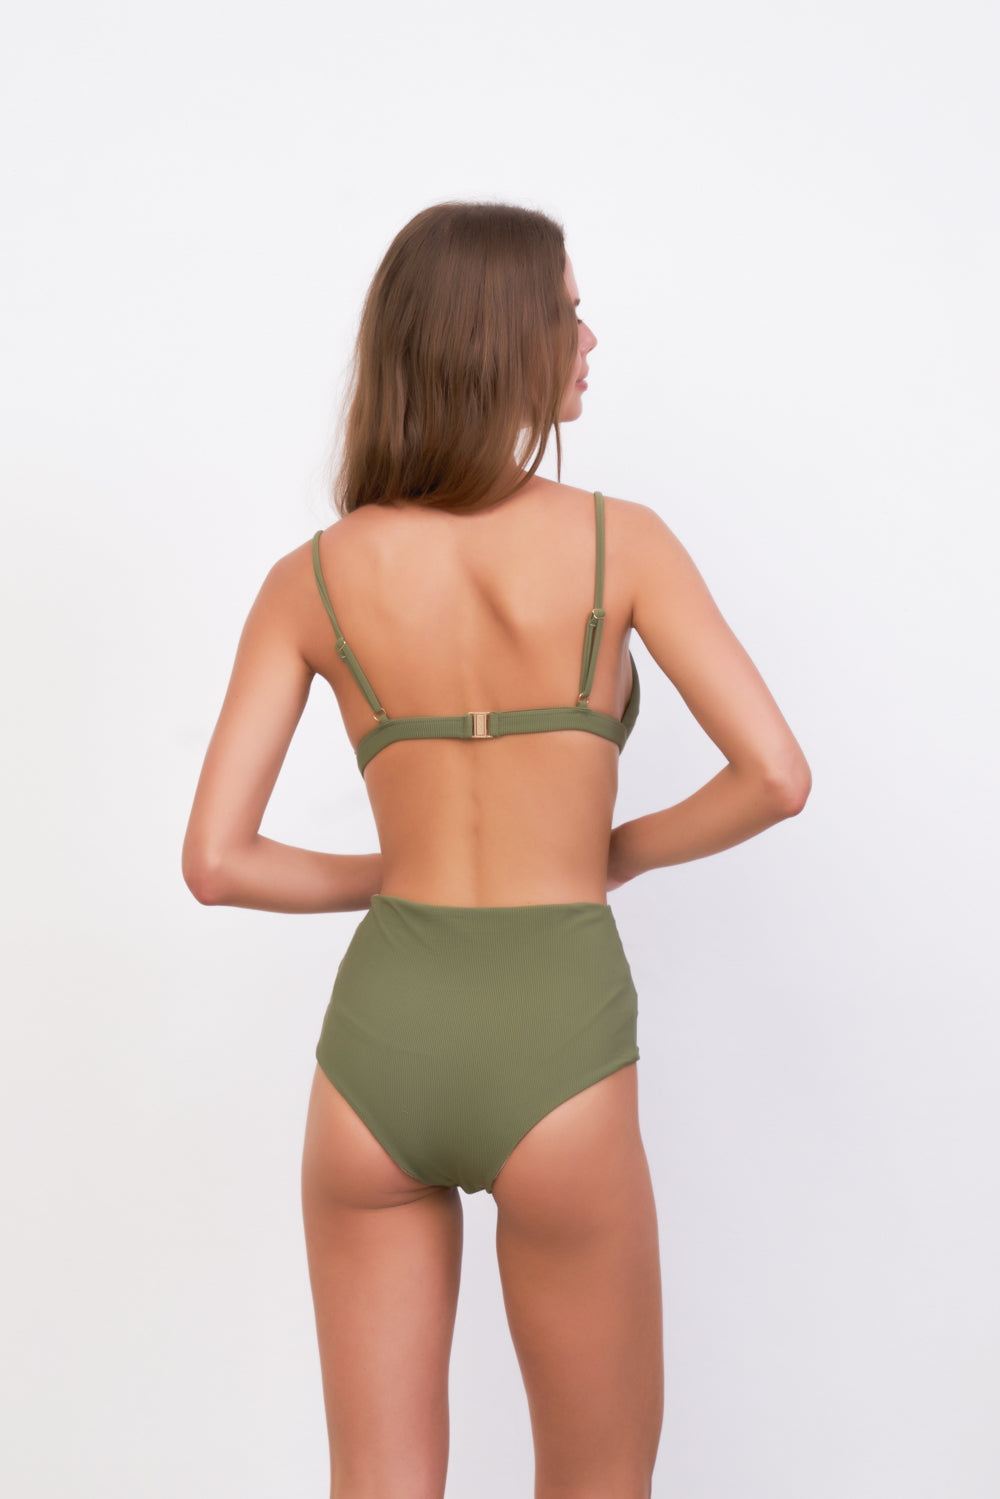 Storm Swimwear - Cannes - High Waist Bikini Bottom in Jungle Corduroy